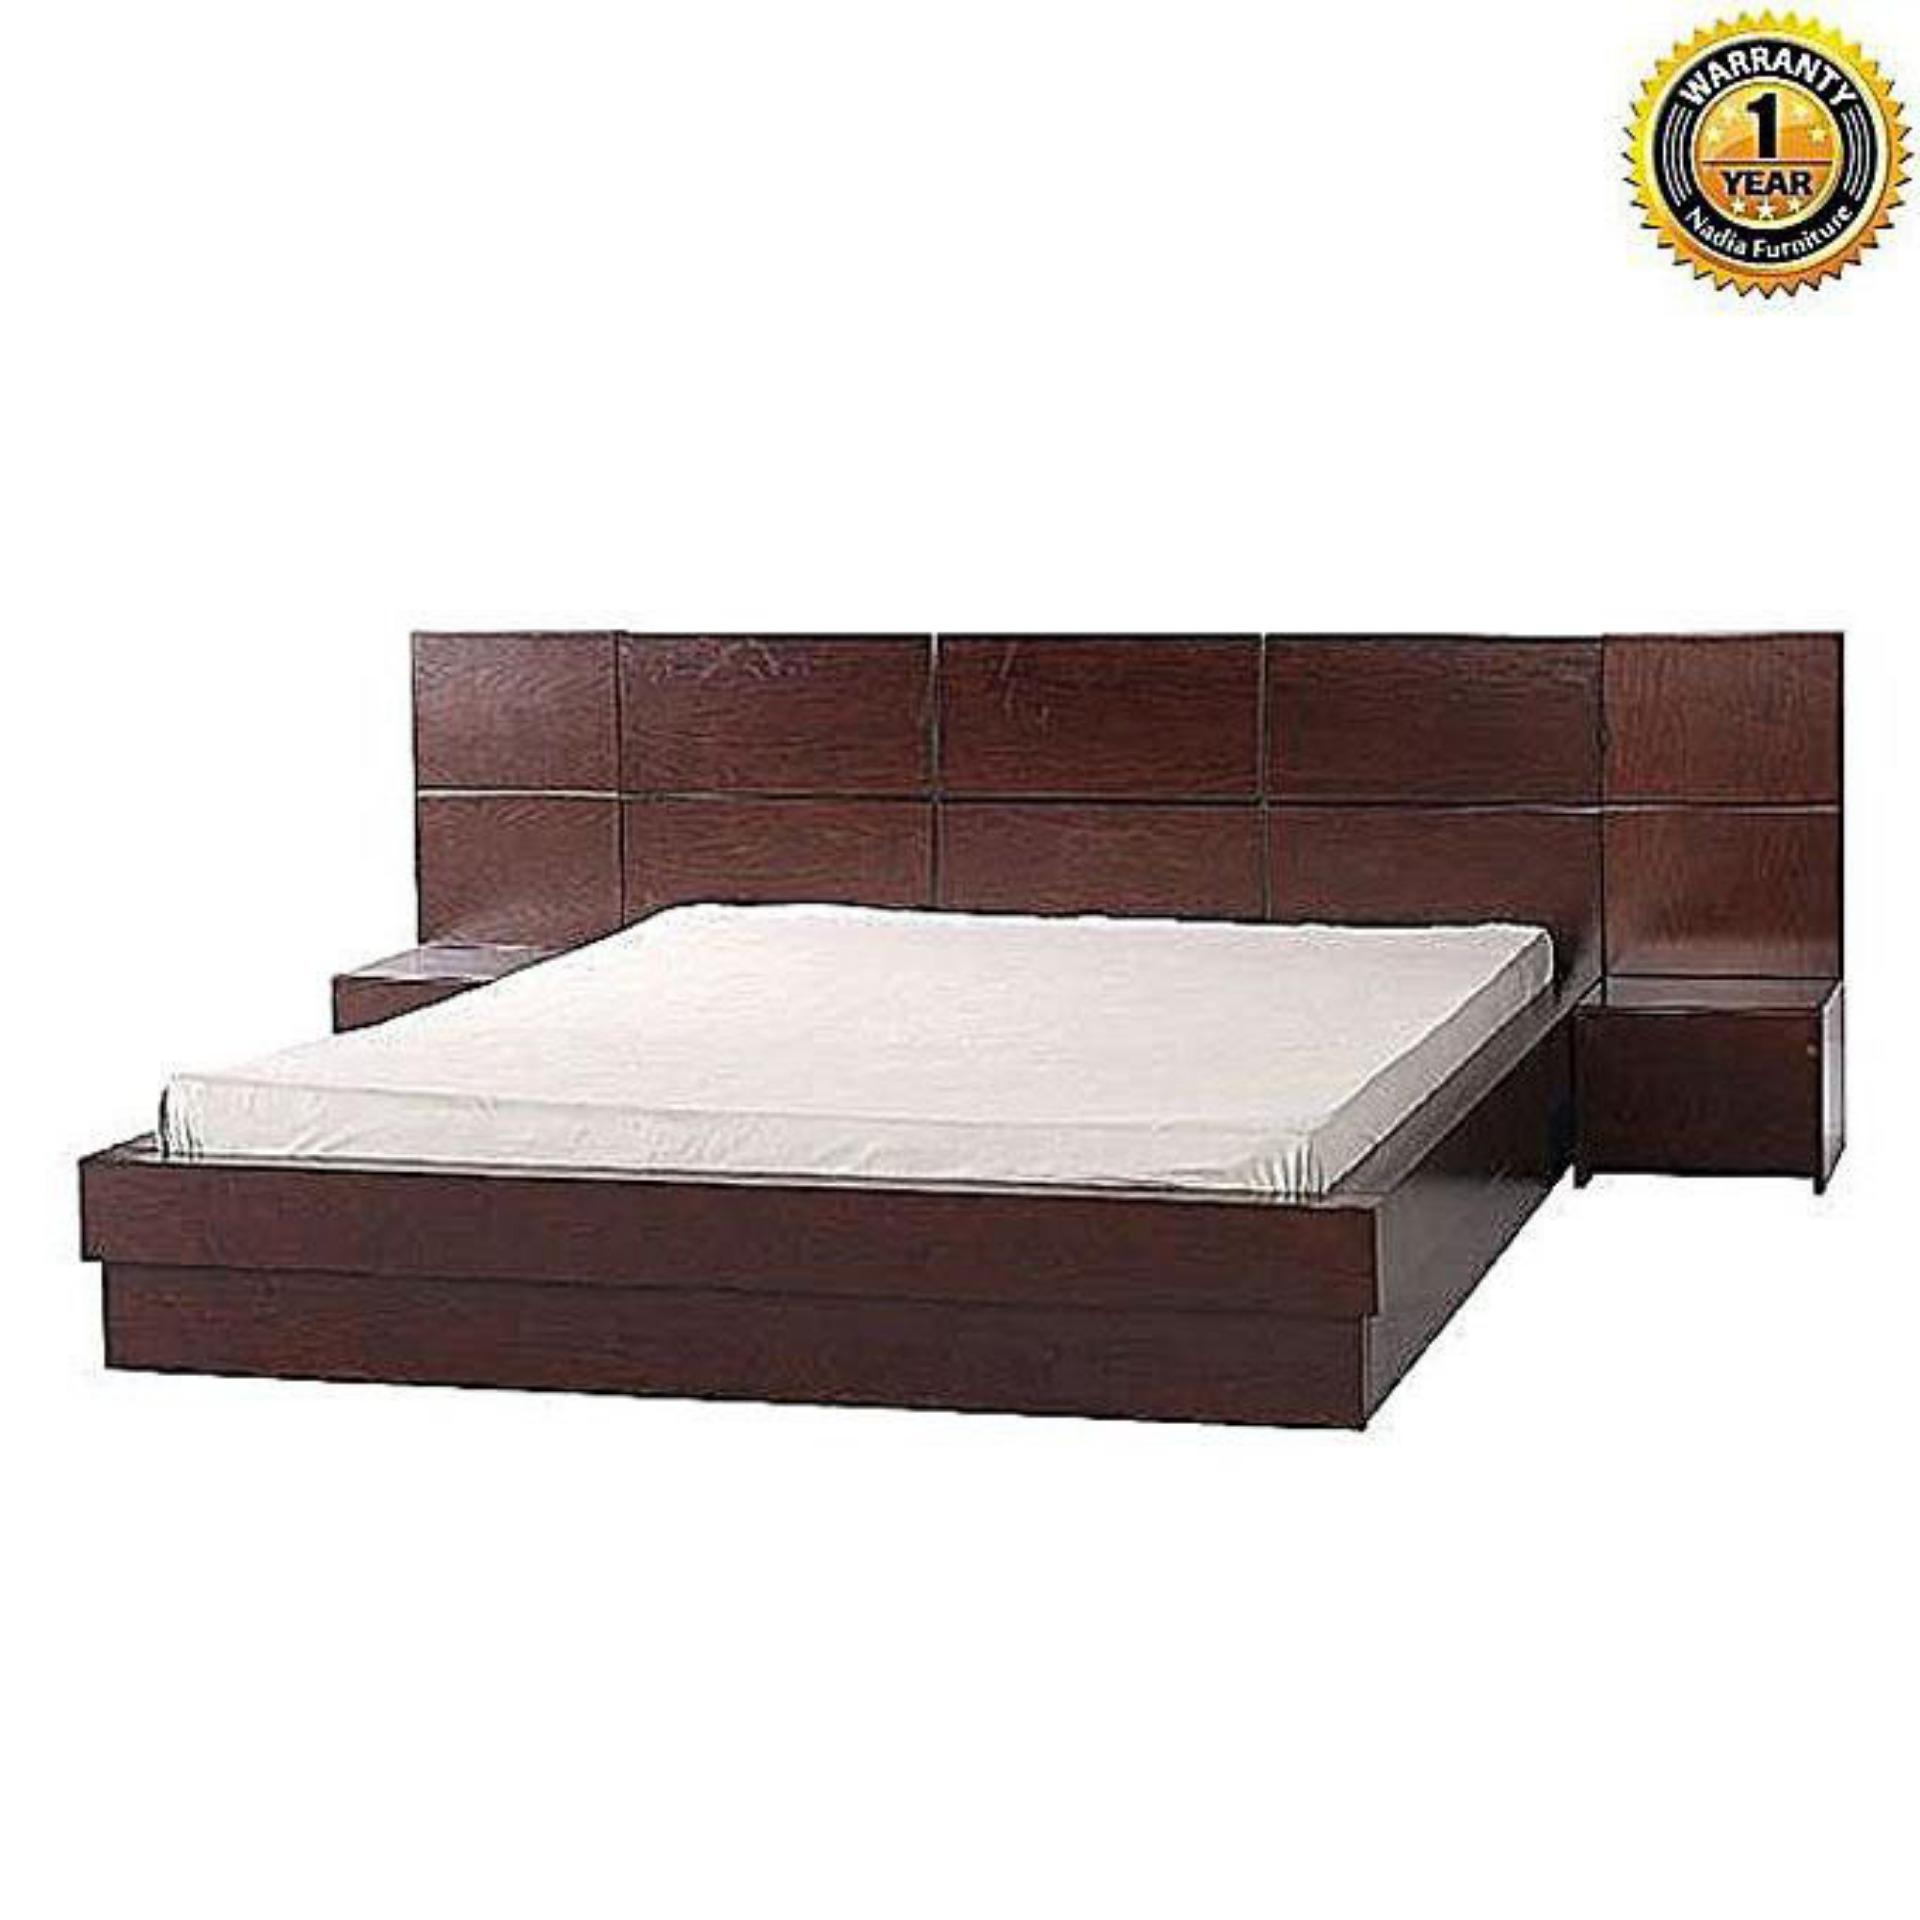 NFL-B-0228-2 Mapple Bed - Glossy A/C Lacquer